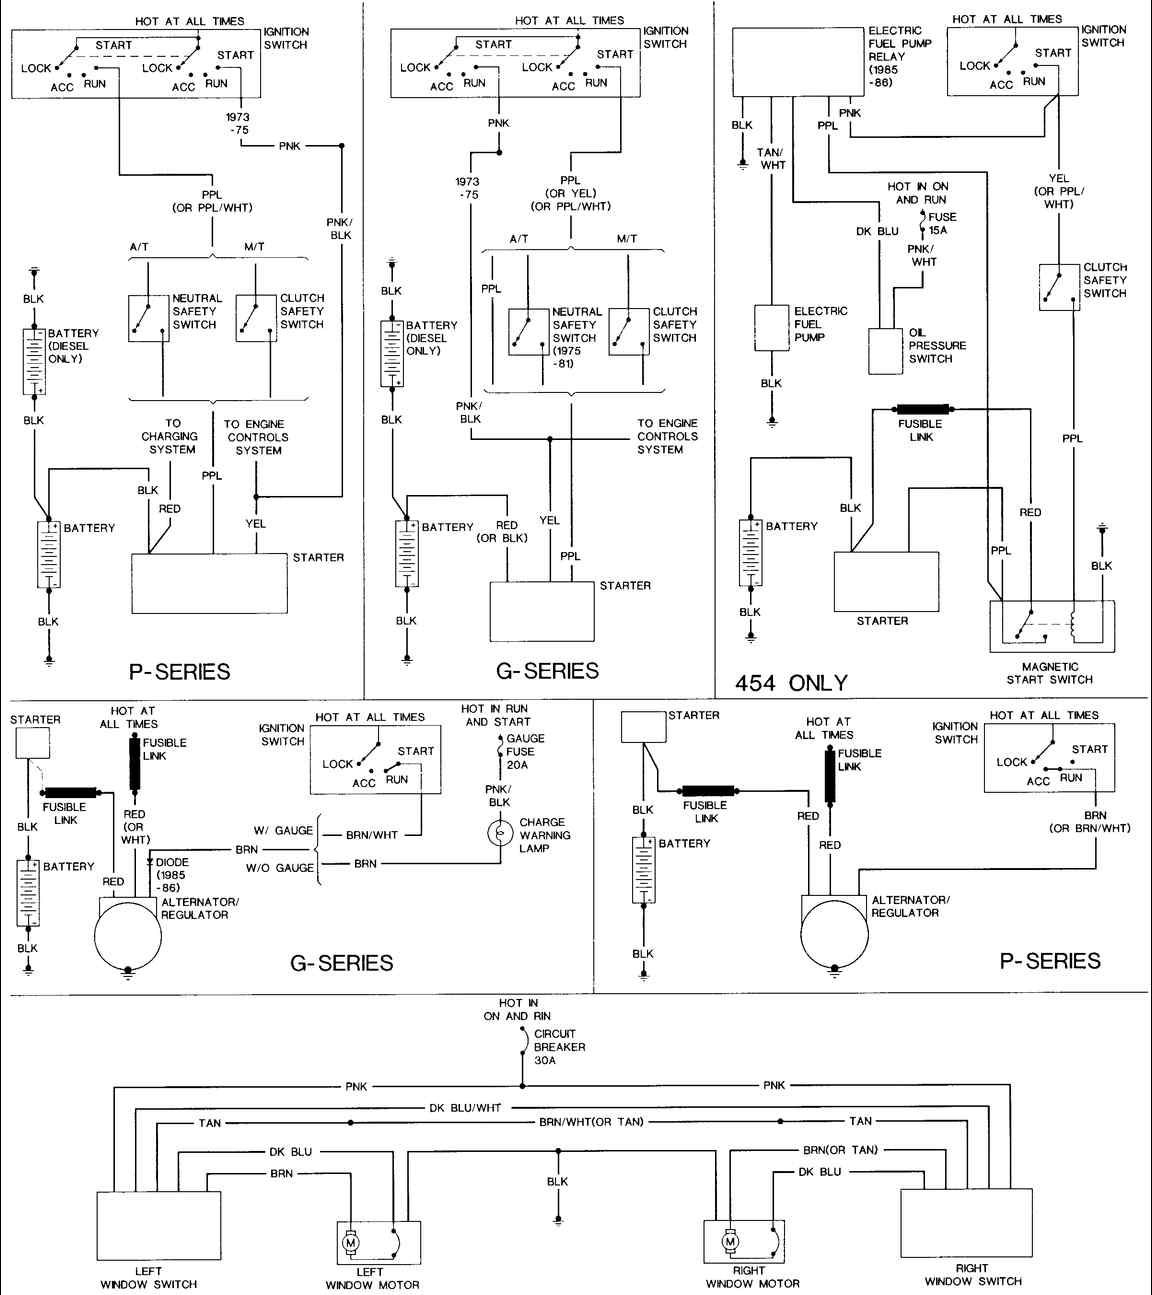 0c73623a181dc376dbb4777e2029d285 85 chevy truck wiring diagram 85 chevy van the steering column 1993 chevy truck wiring schematic at bayanpartner.co